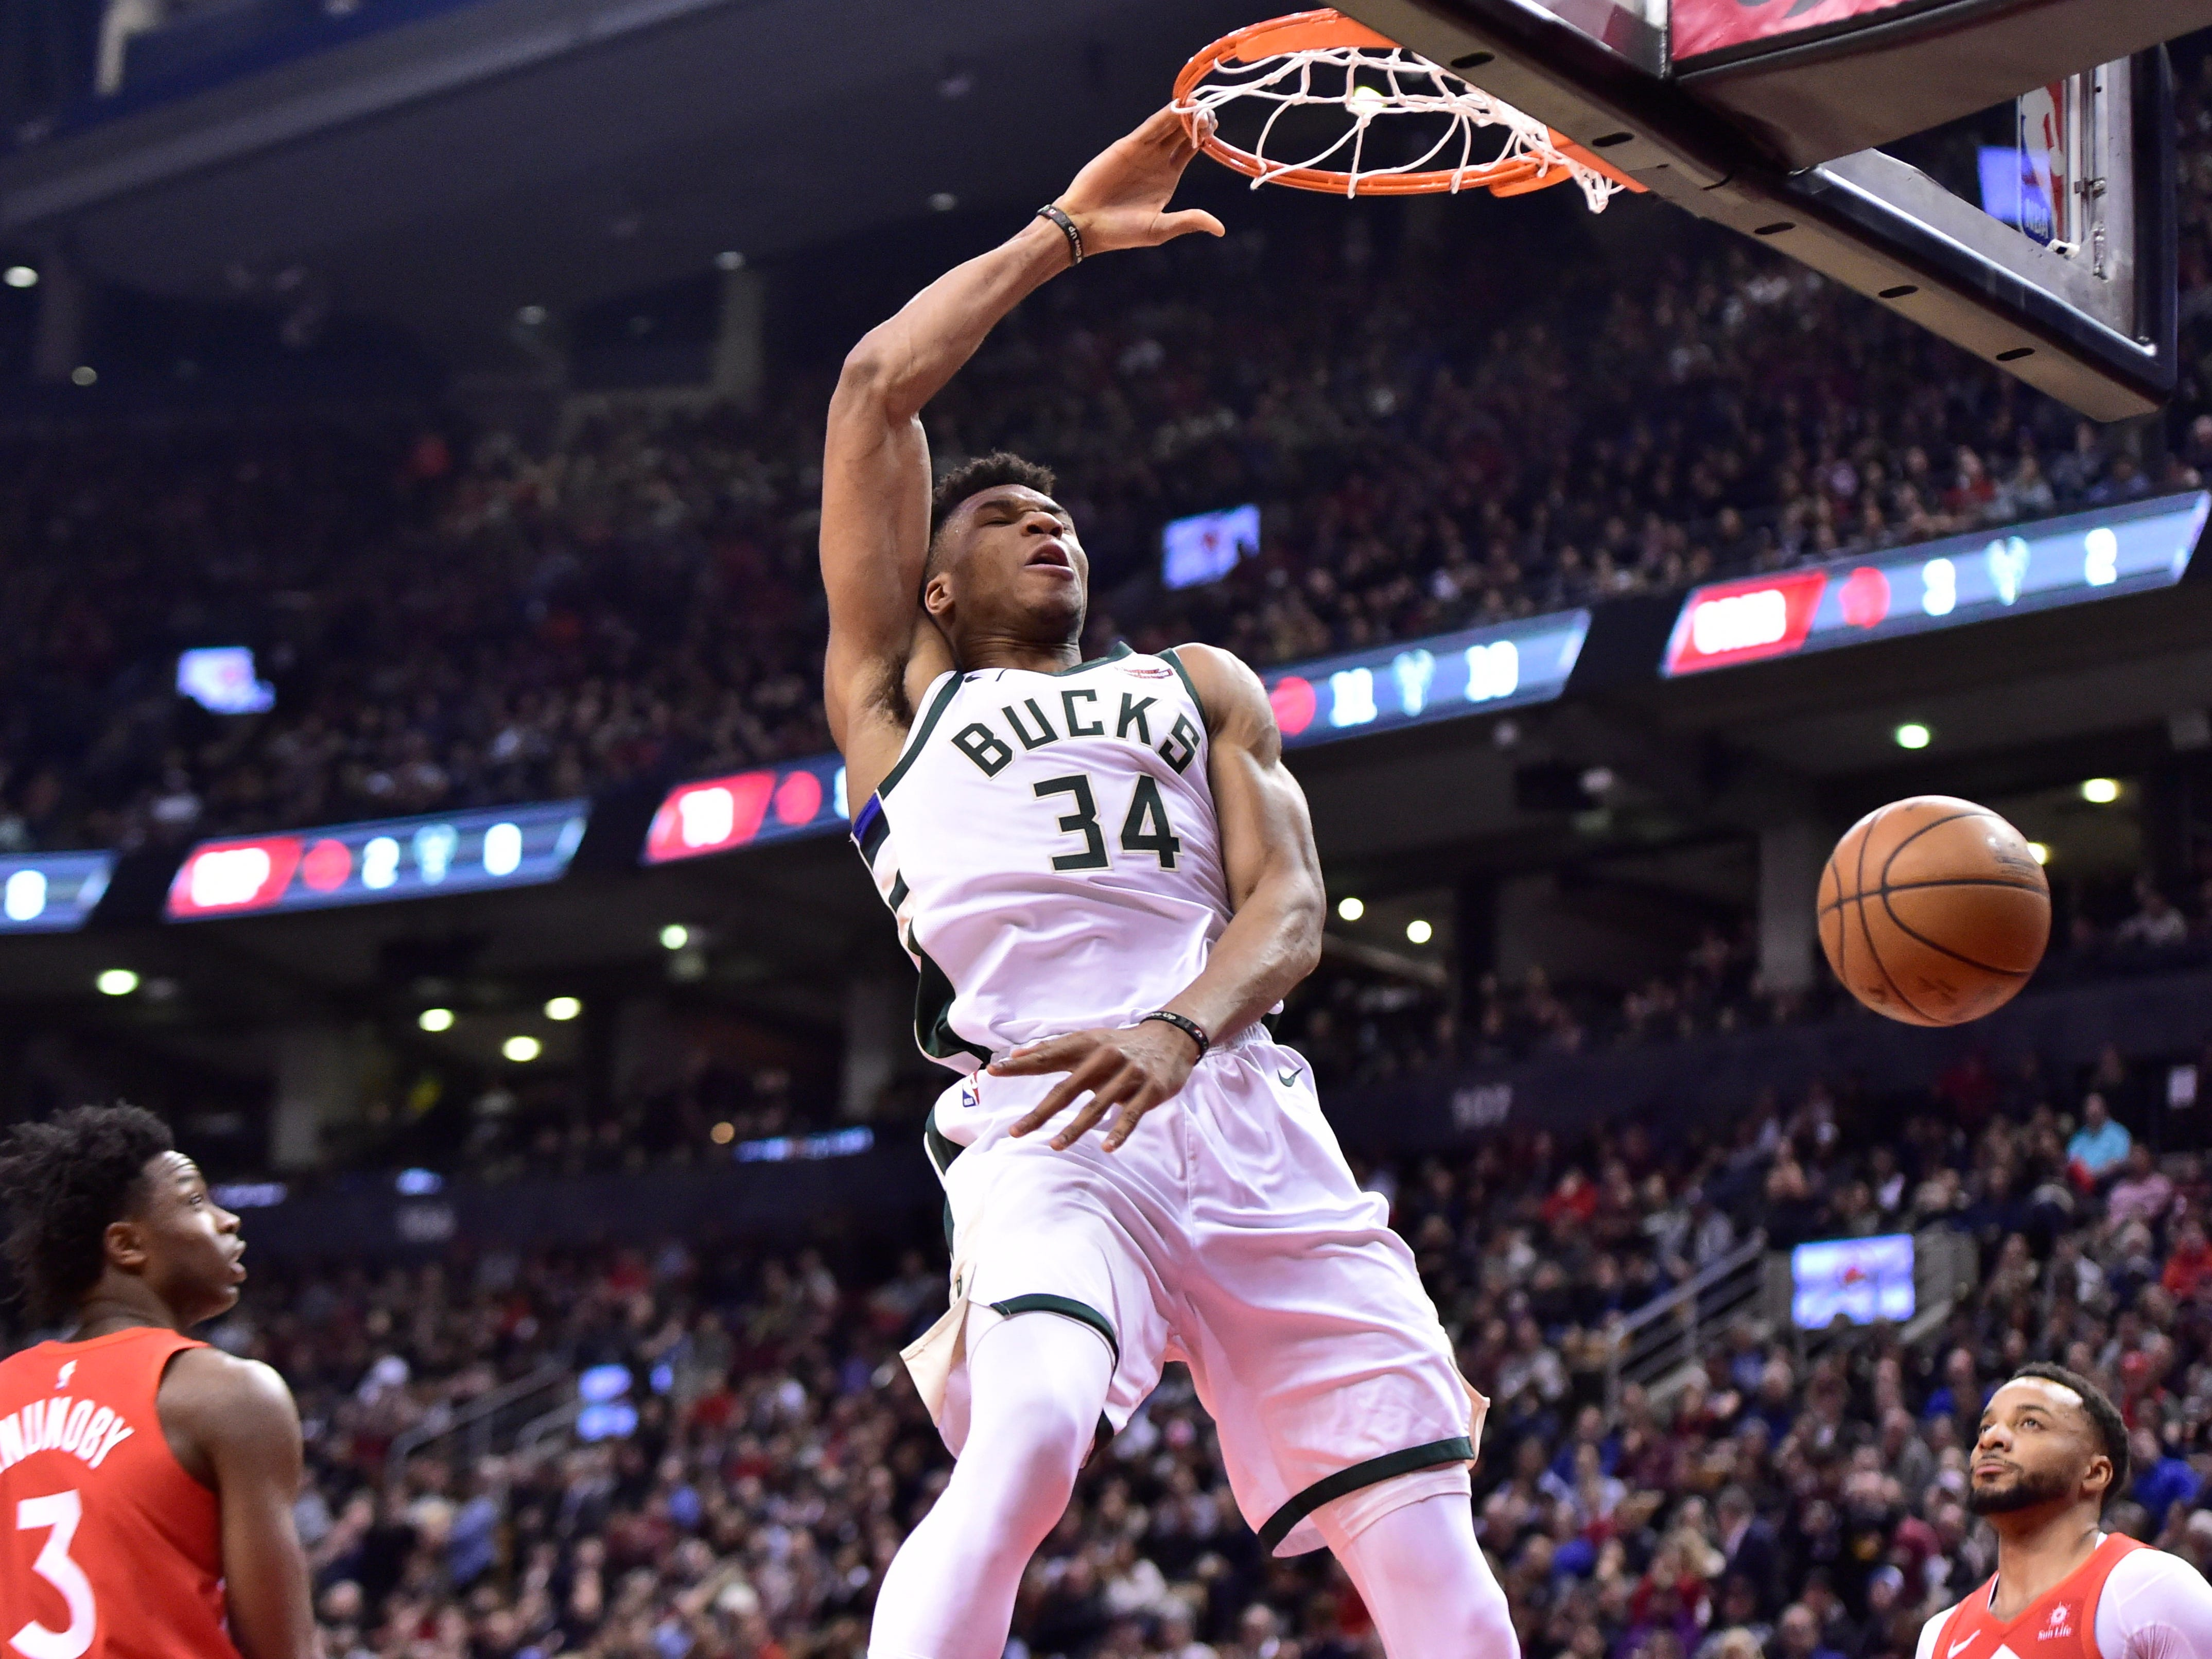 OG Anunoby (left) and Norman Powell of the Raptors helplessly watch as Giannis Antetokounmpo of the Bucks slams home two points during the first half Thursday night.